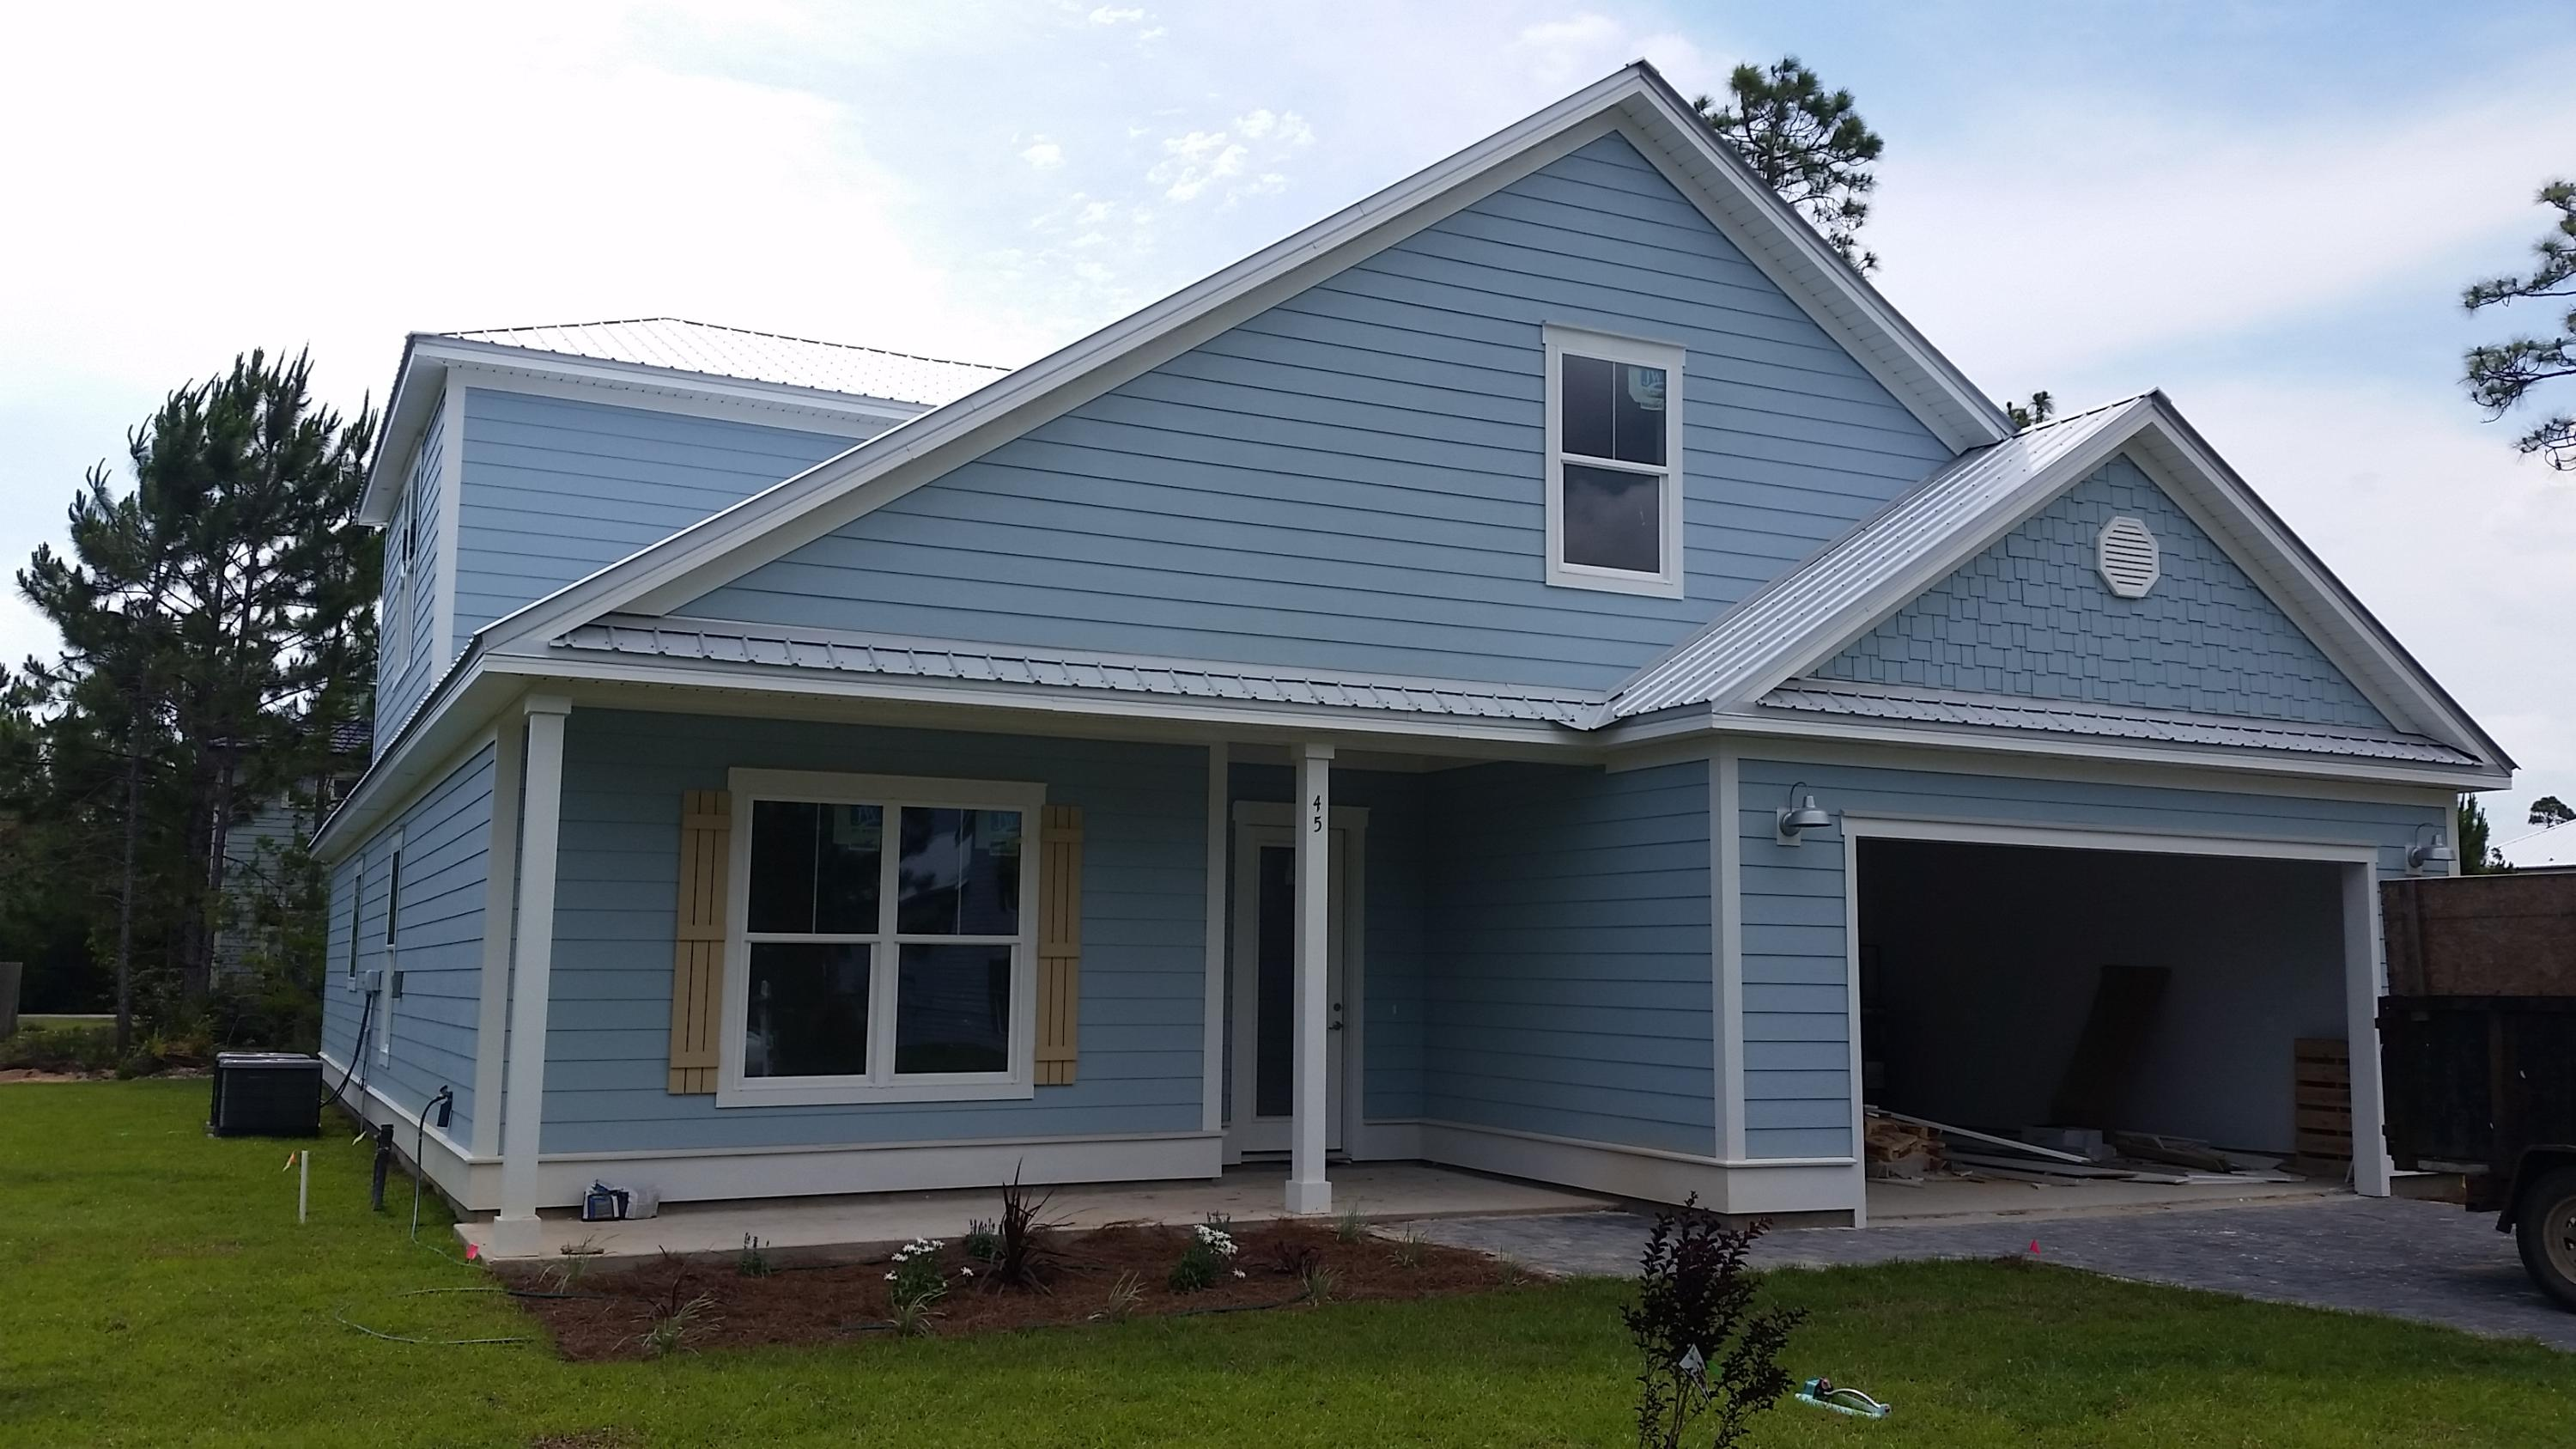 Photo of home for sale at 45 Breezeway (Lot 100), Santa Rosa Beach FL